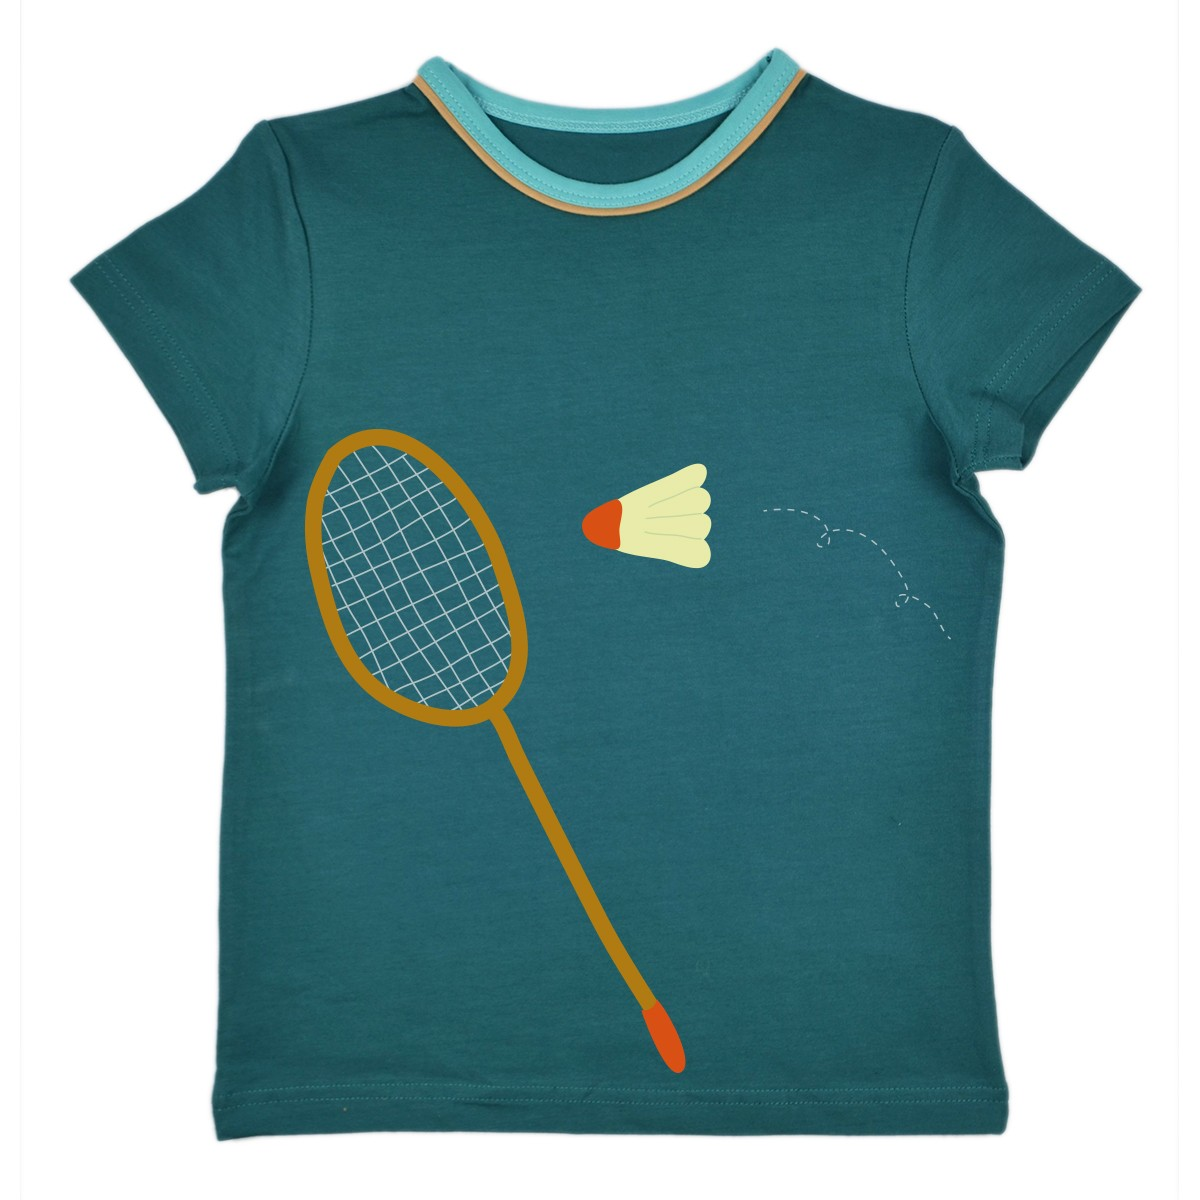 T-shirt badminton